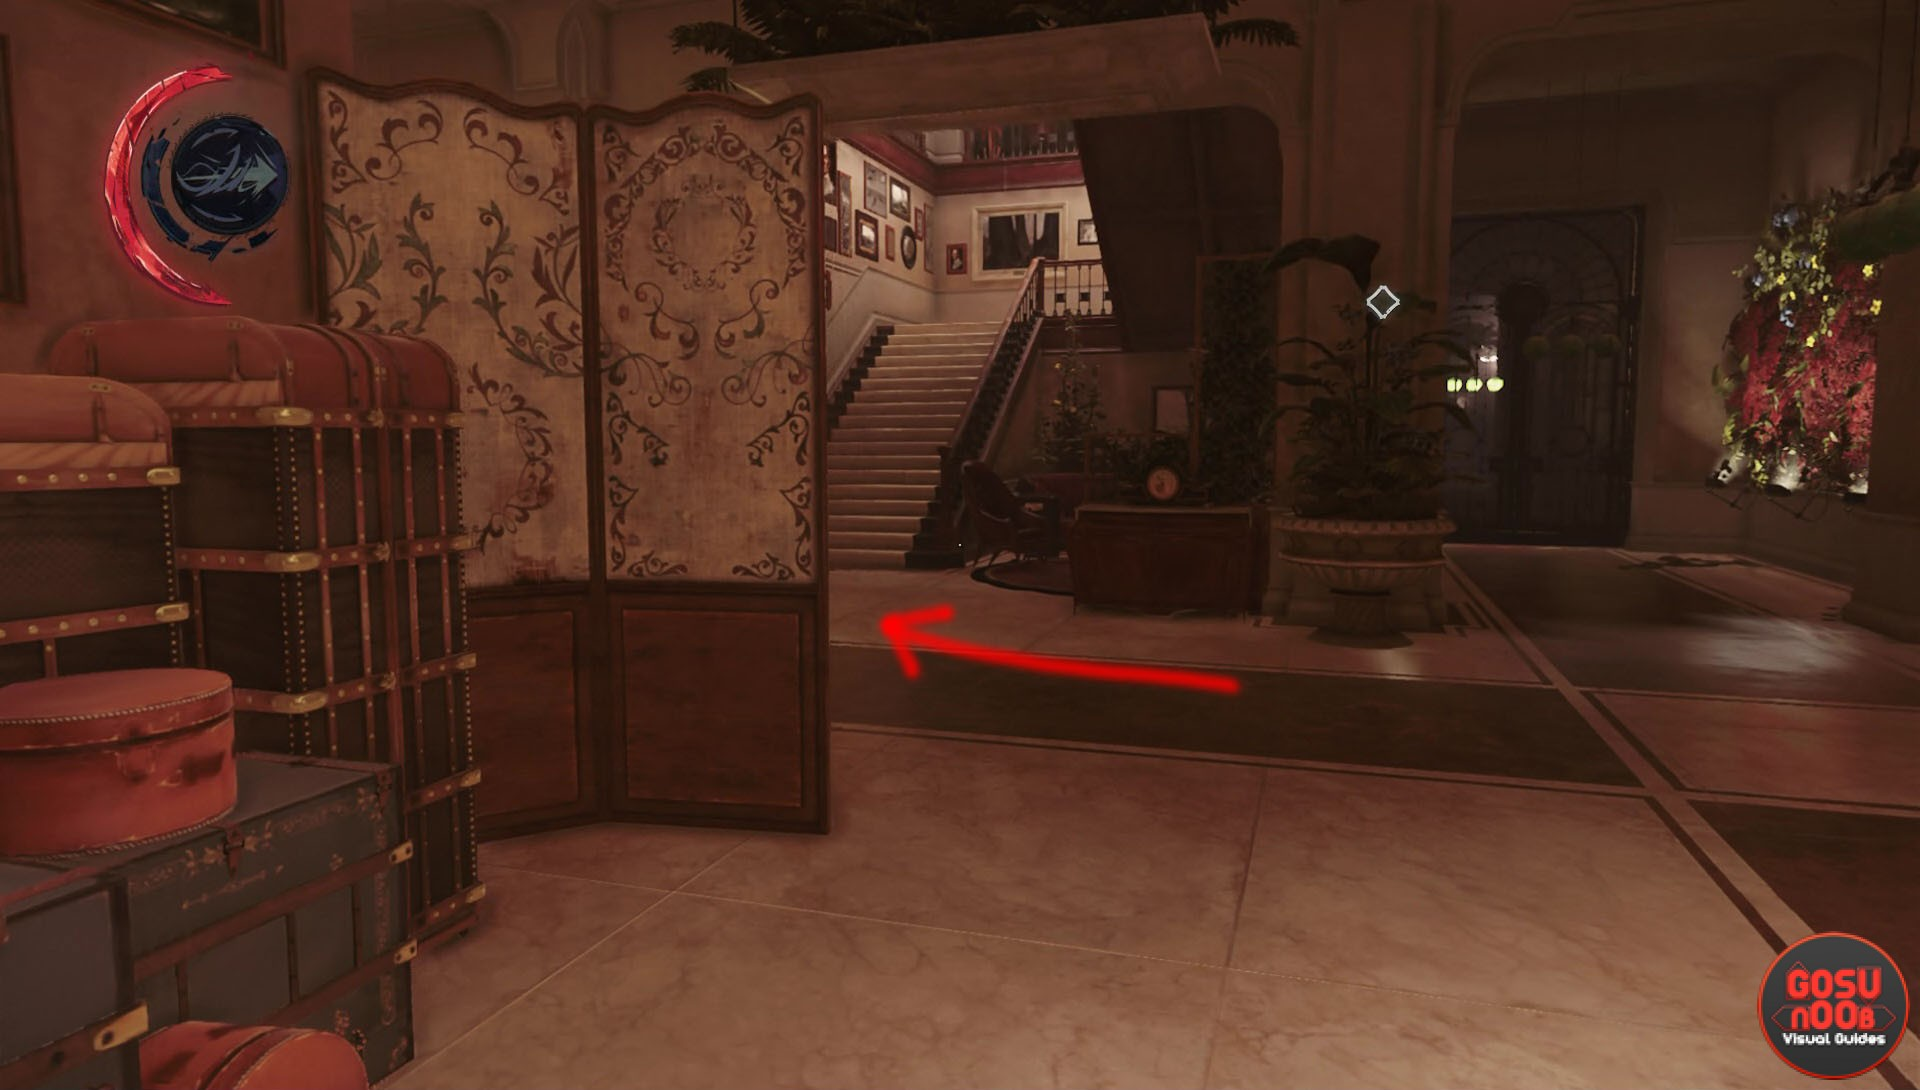 Master key location dishonored 2 - Home expo design center locations ...